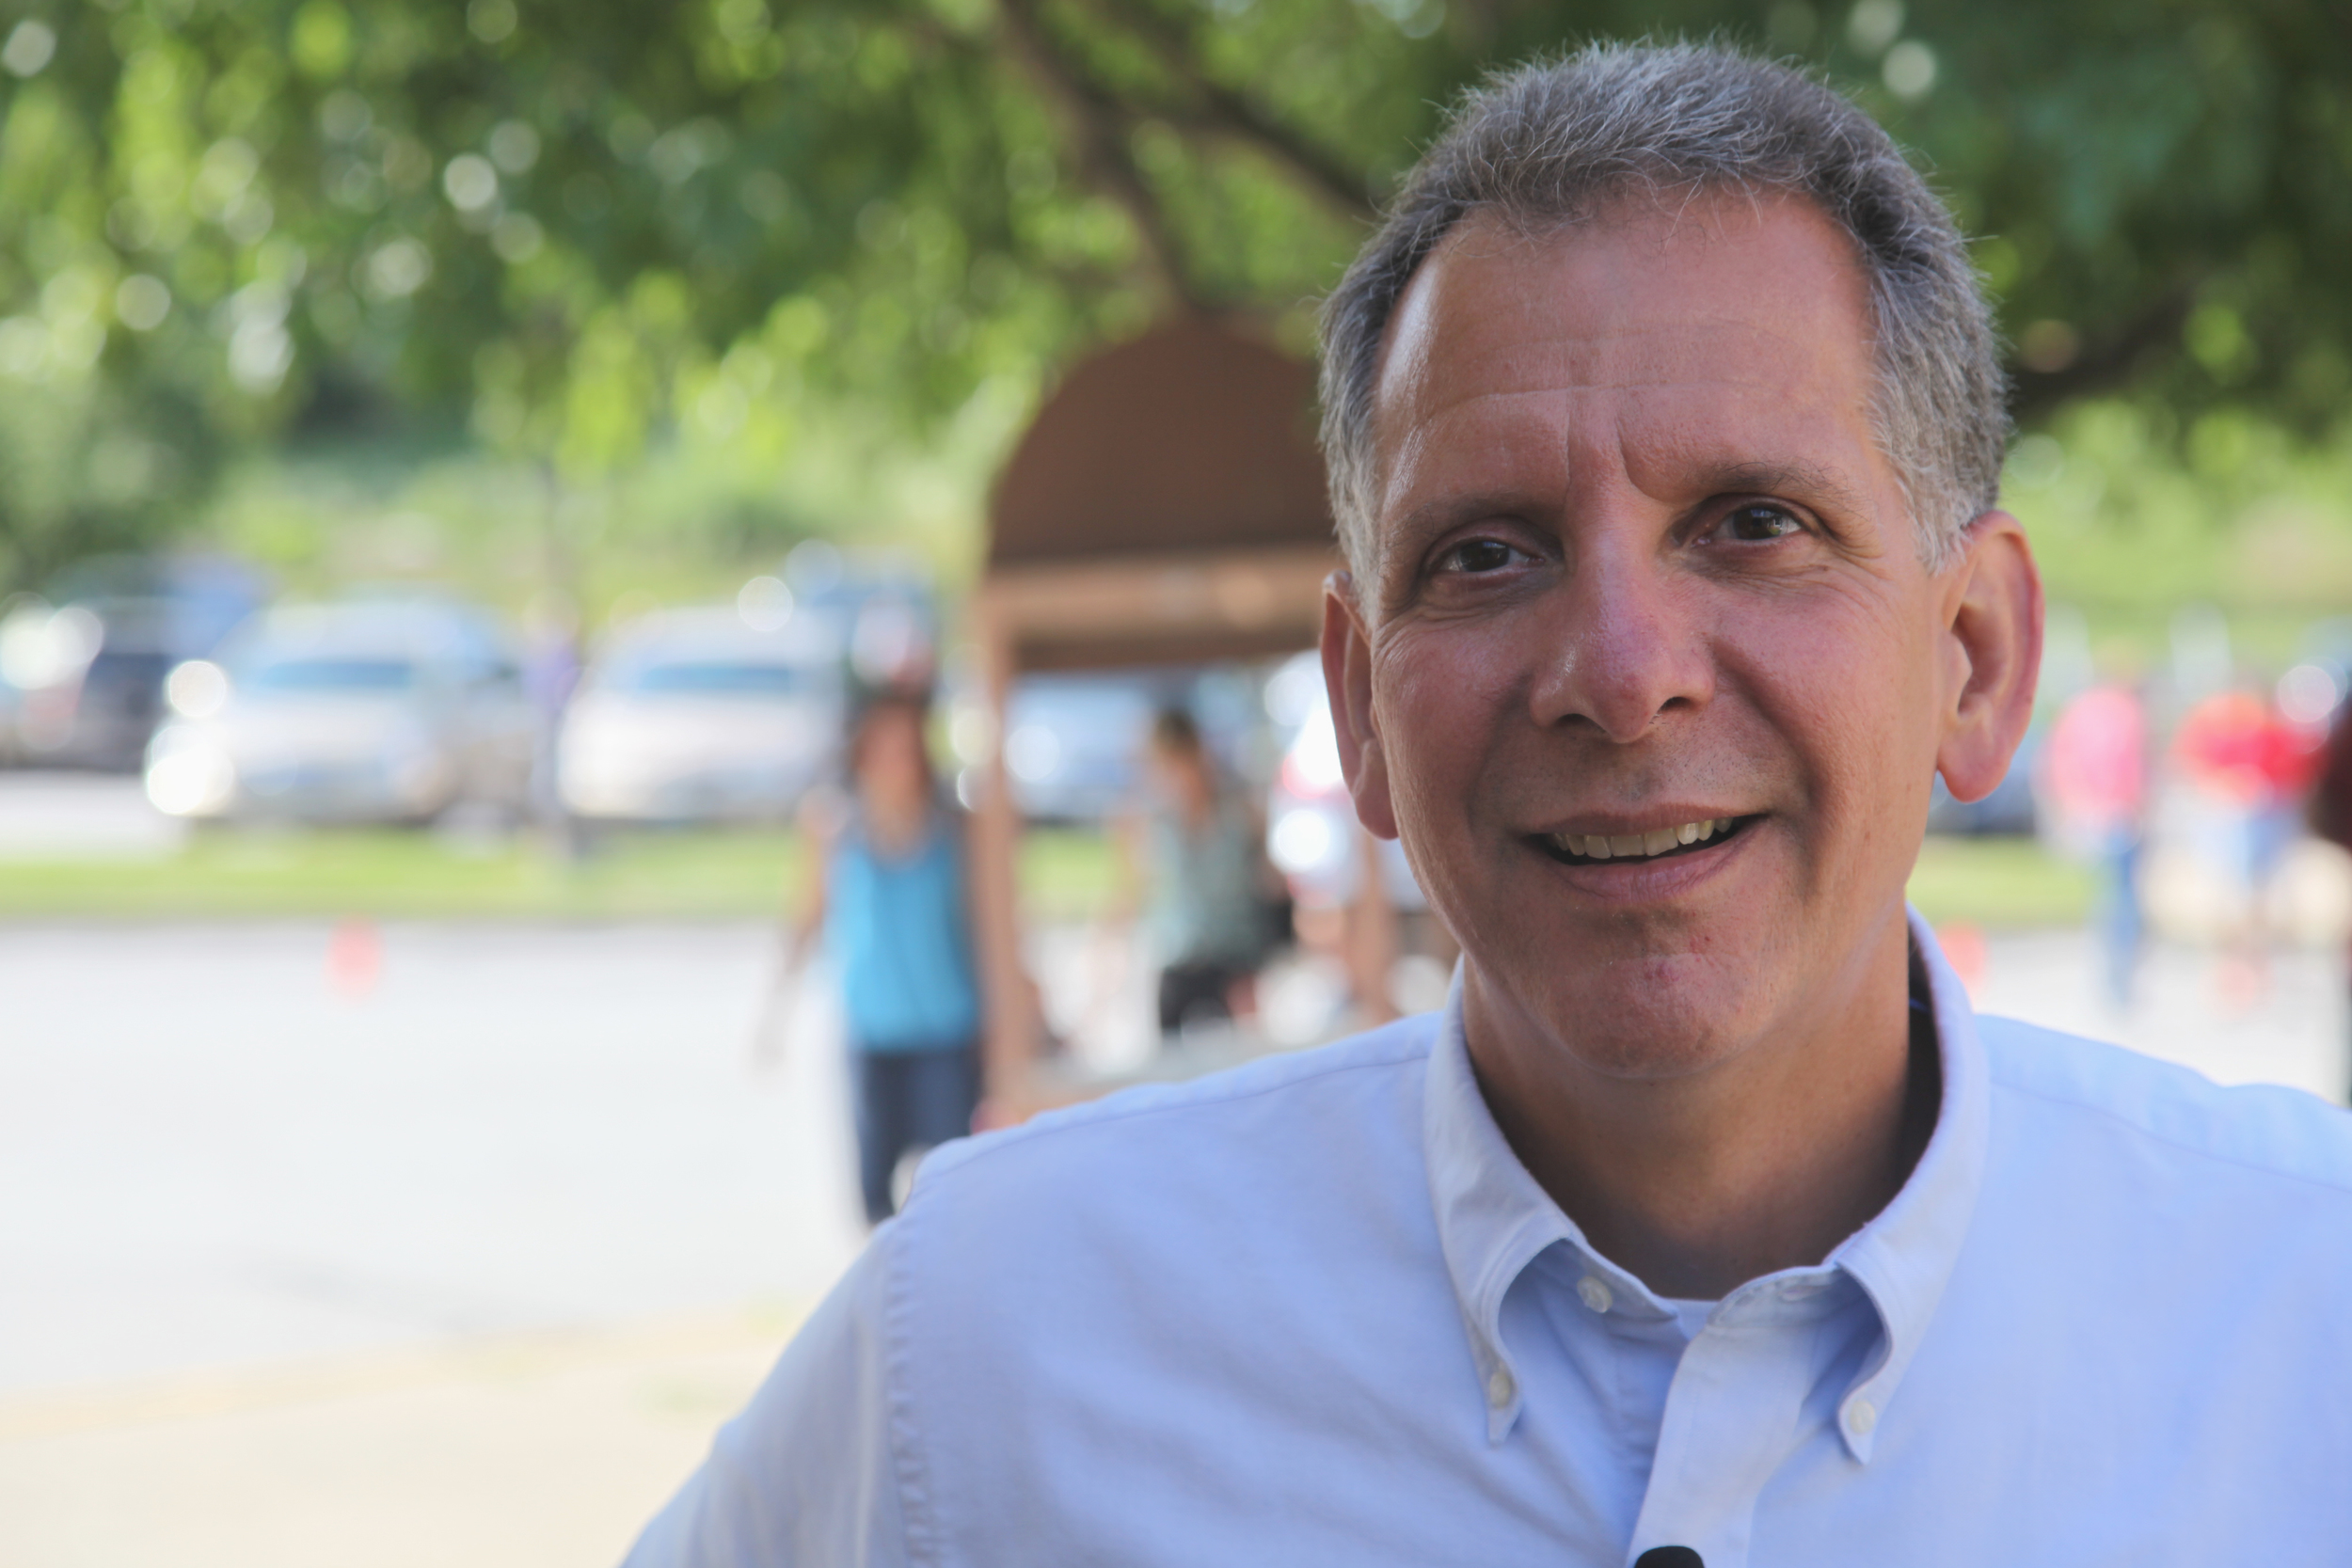 Armin Sommer  is Senior Pastor of  Grace Church on the Mount (Netcong, NJ);  a Church with a vision to Raise Up Generations of Families That Are Built to Last.